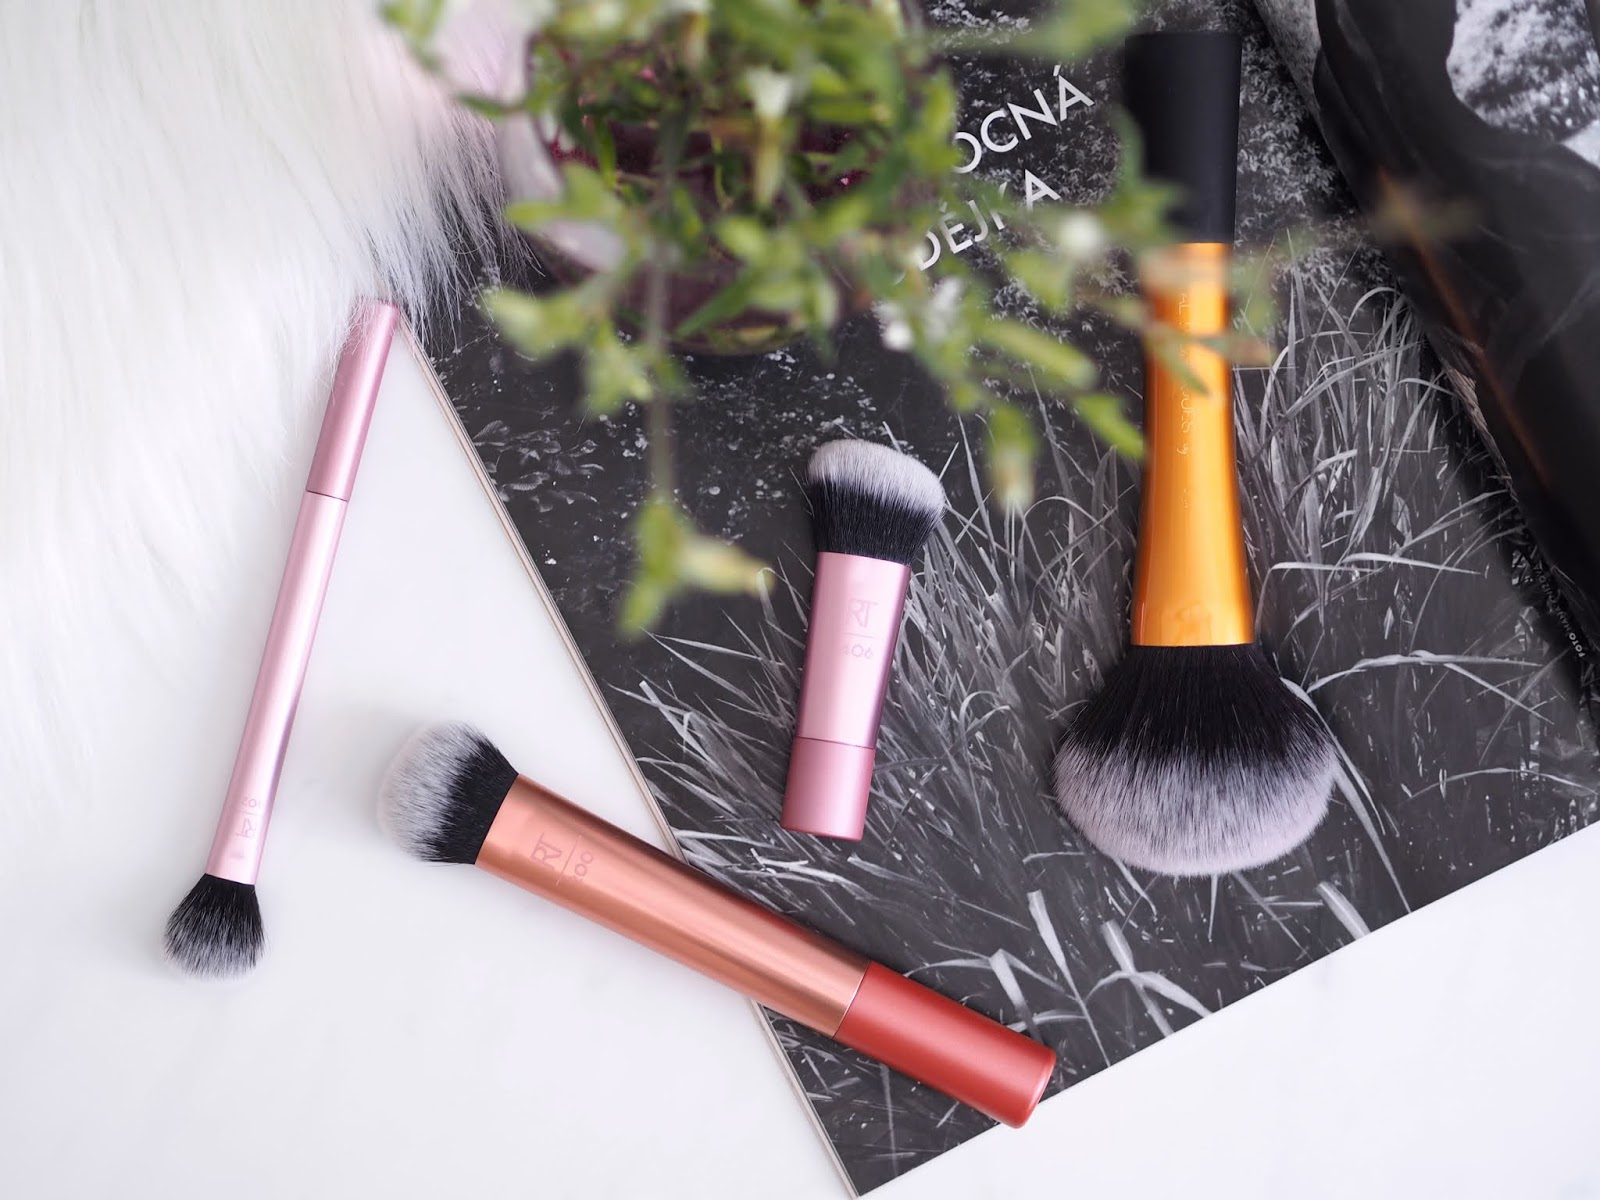 Real Techniques kozmetické štetce, cosmetics brushes